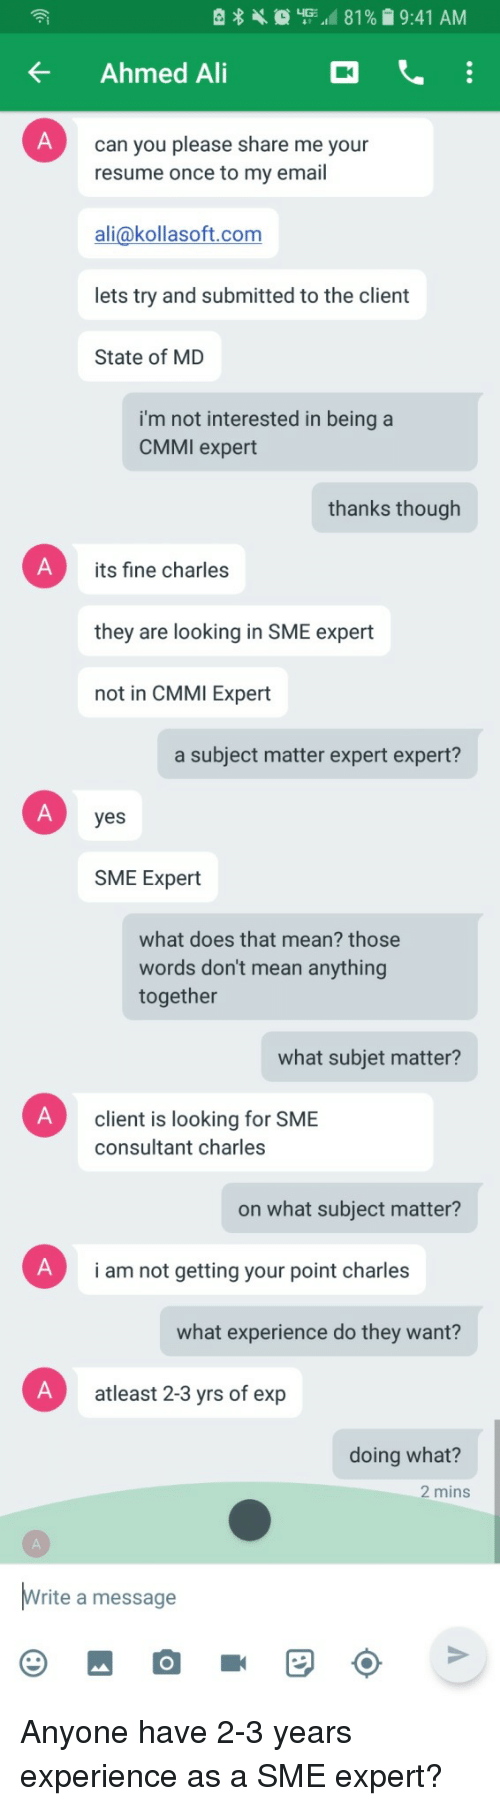 Your Point: KAhmed Ai  can you please share me your  resume once to my email  ali@kollasoft.com  lets try and submitted to the client  State of MD  i'm not interested in being a  CMMI expert  thanks though  its fine charles  they are looking in SME expert  not in CMMI Expert  a subject matter expert expert?  yes  SME Expert  what does that mean? those  words don't mean anything  together  what subjet matter?  client is looking for SME  consultant charles  on what subject matter?  i am not getting your point charles  what experience do they want?  atleast 2-3 yrs of exp  doing what?  2 mins  rite a message Anyone have 2-3 years experience as a SME expert?